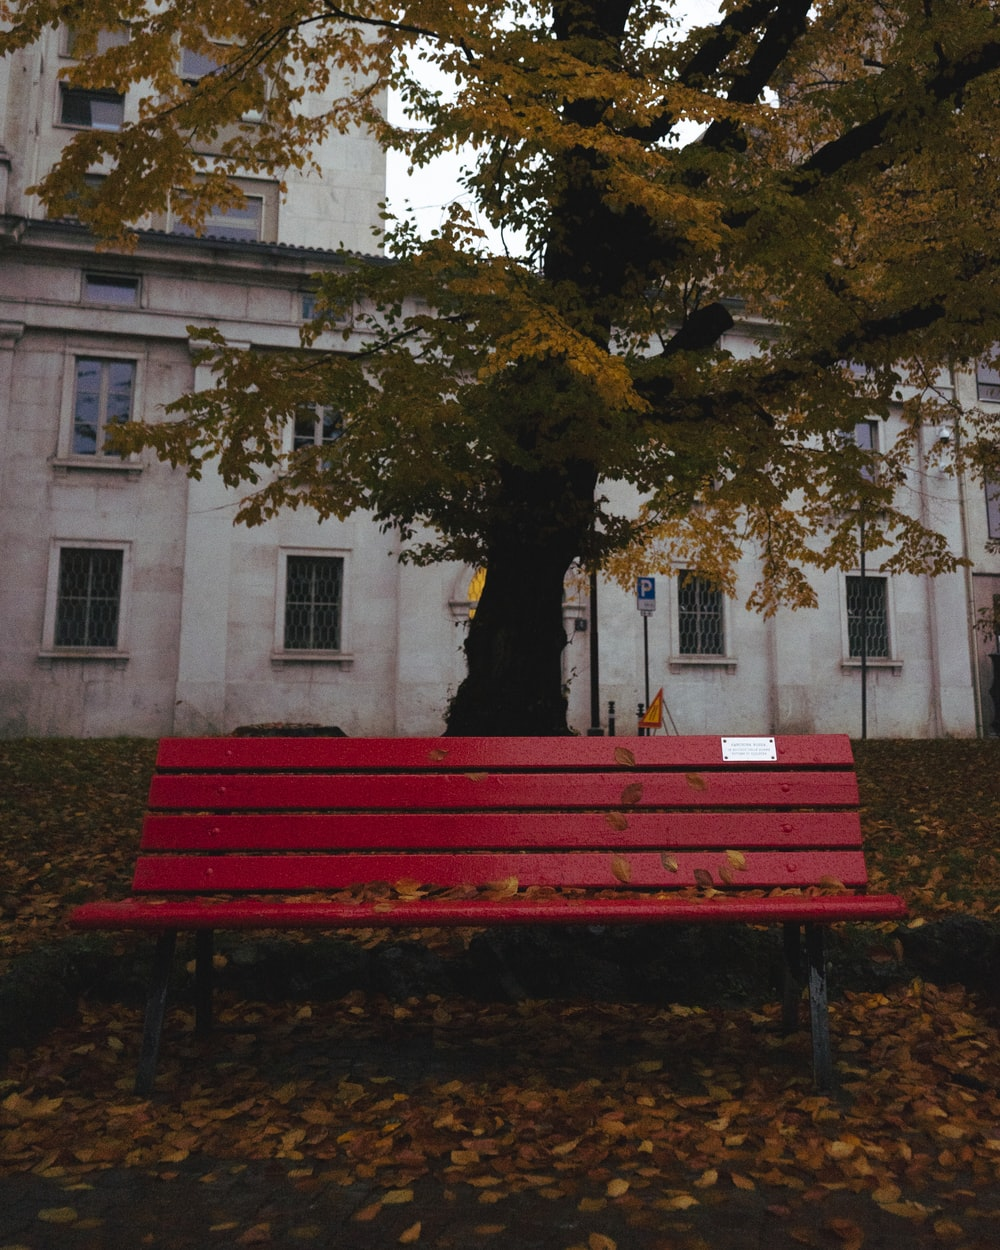 red wooden bench in front of tree